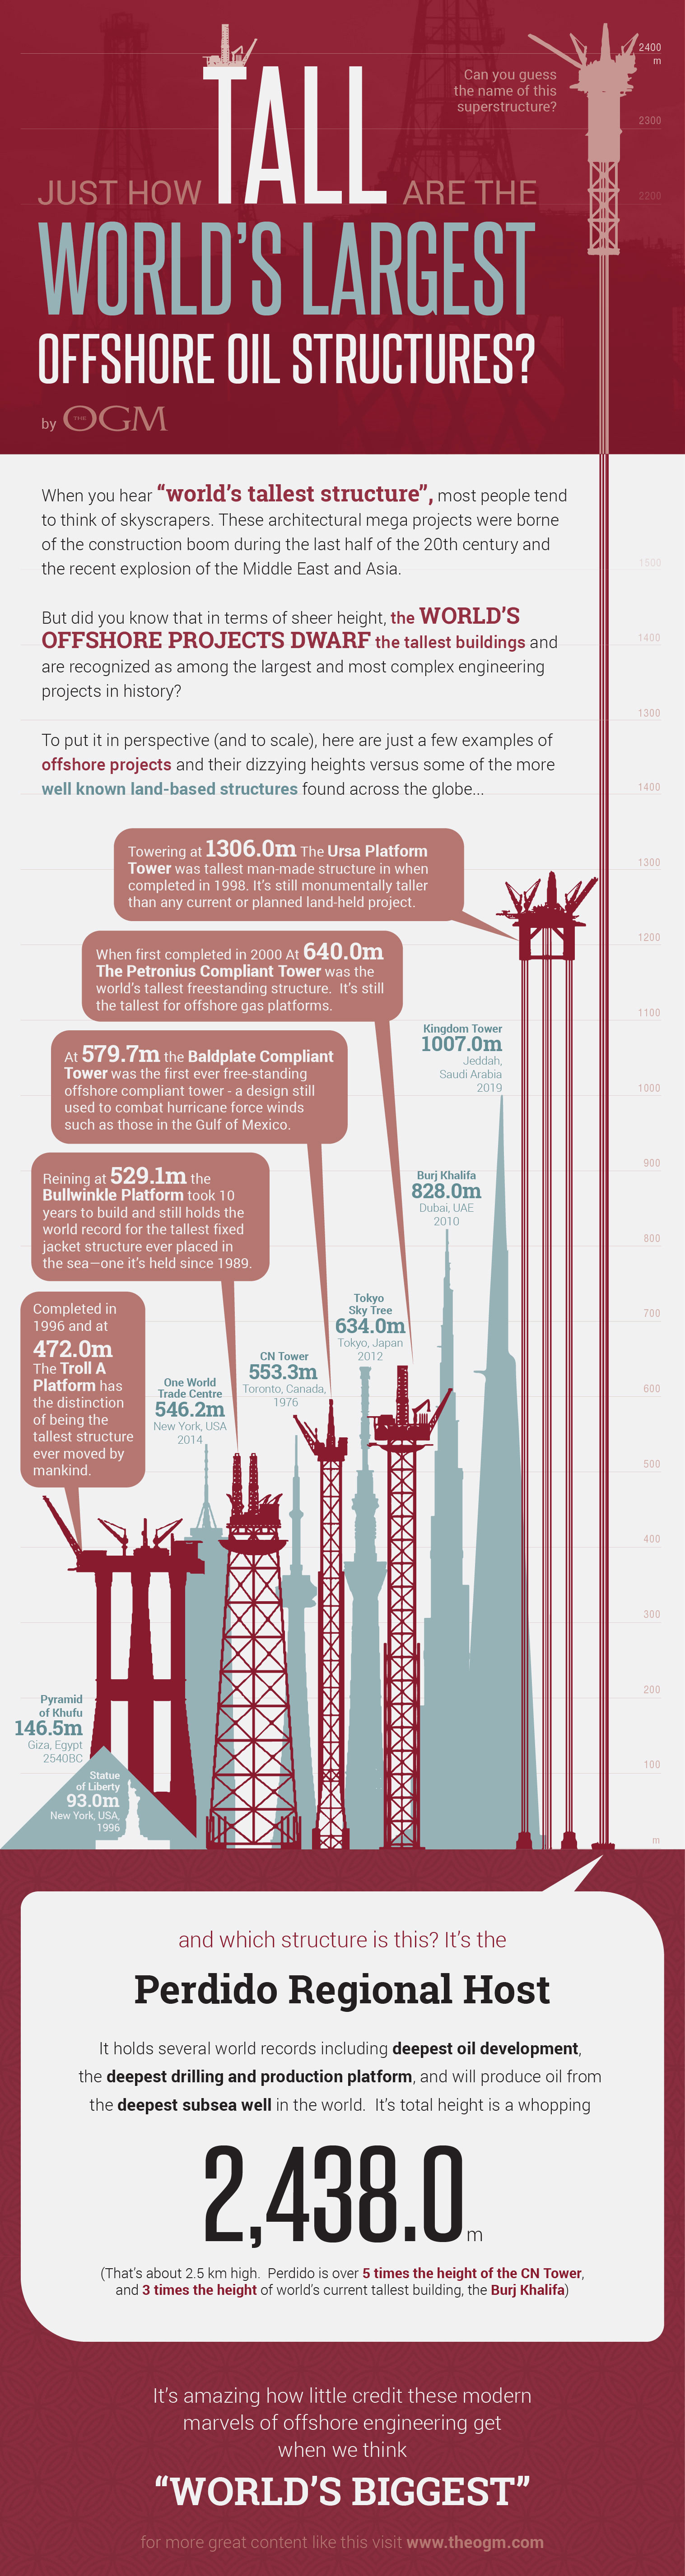 How Tall are the World's Largest Offshore Oil Structures